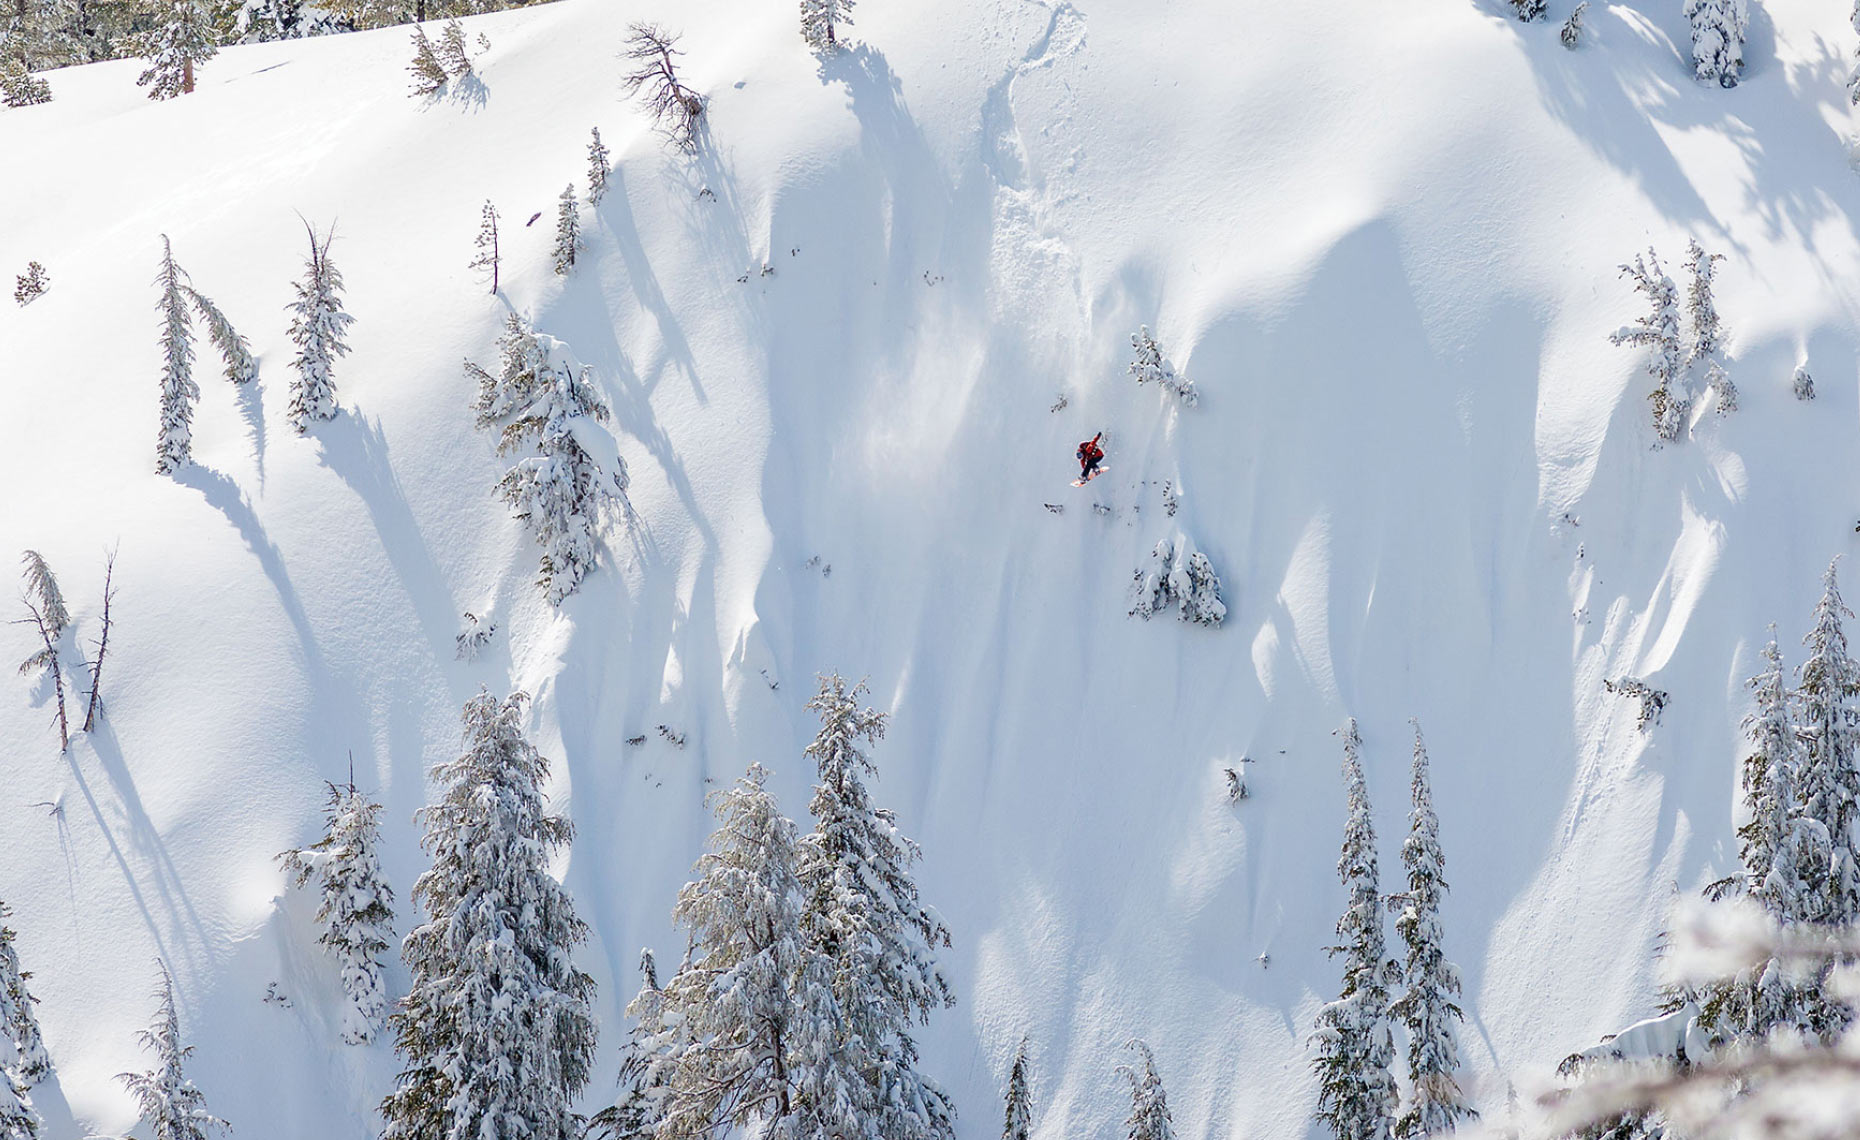 Phantom-Lifts-June-To-Mammoth-TWSNOW-Chris-Wellhausen-16